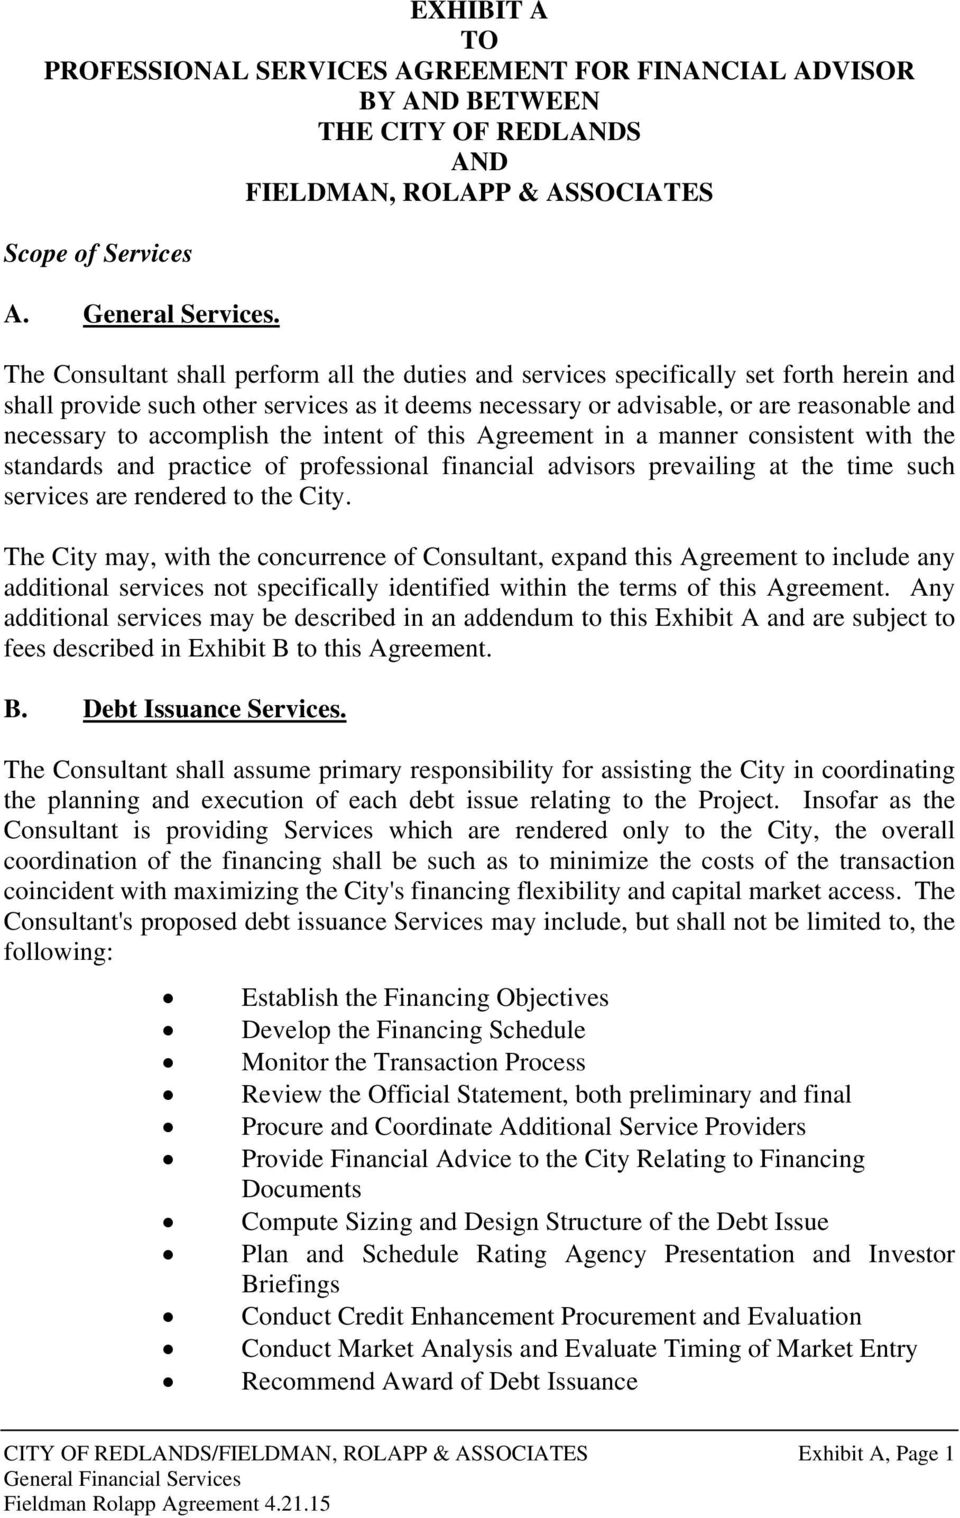 accomplish the intent of this Agreement in a manner consistent with the standards and practice of professional financial advisors prevailing at the time such services are rendered to the City.